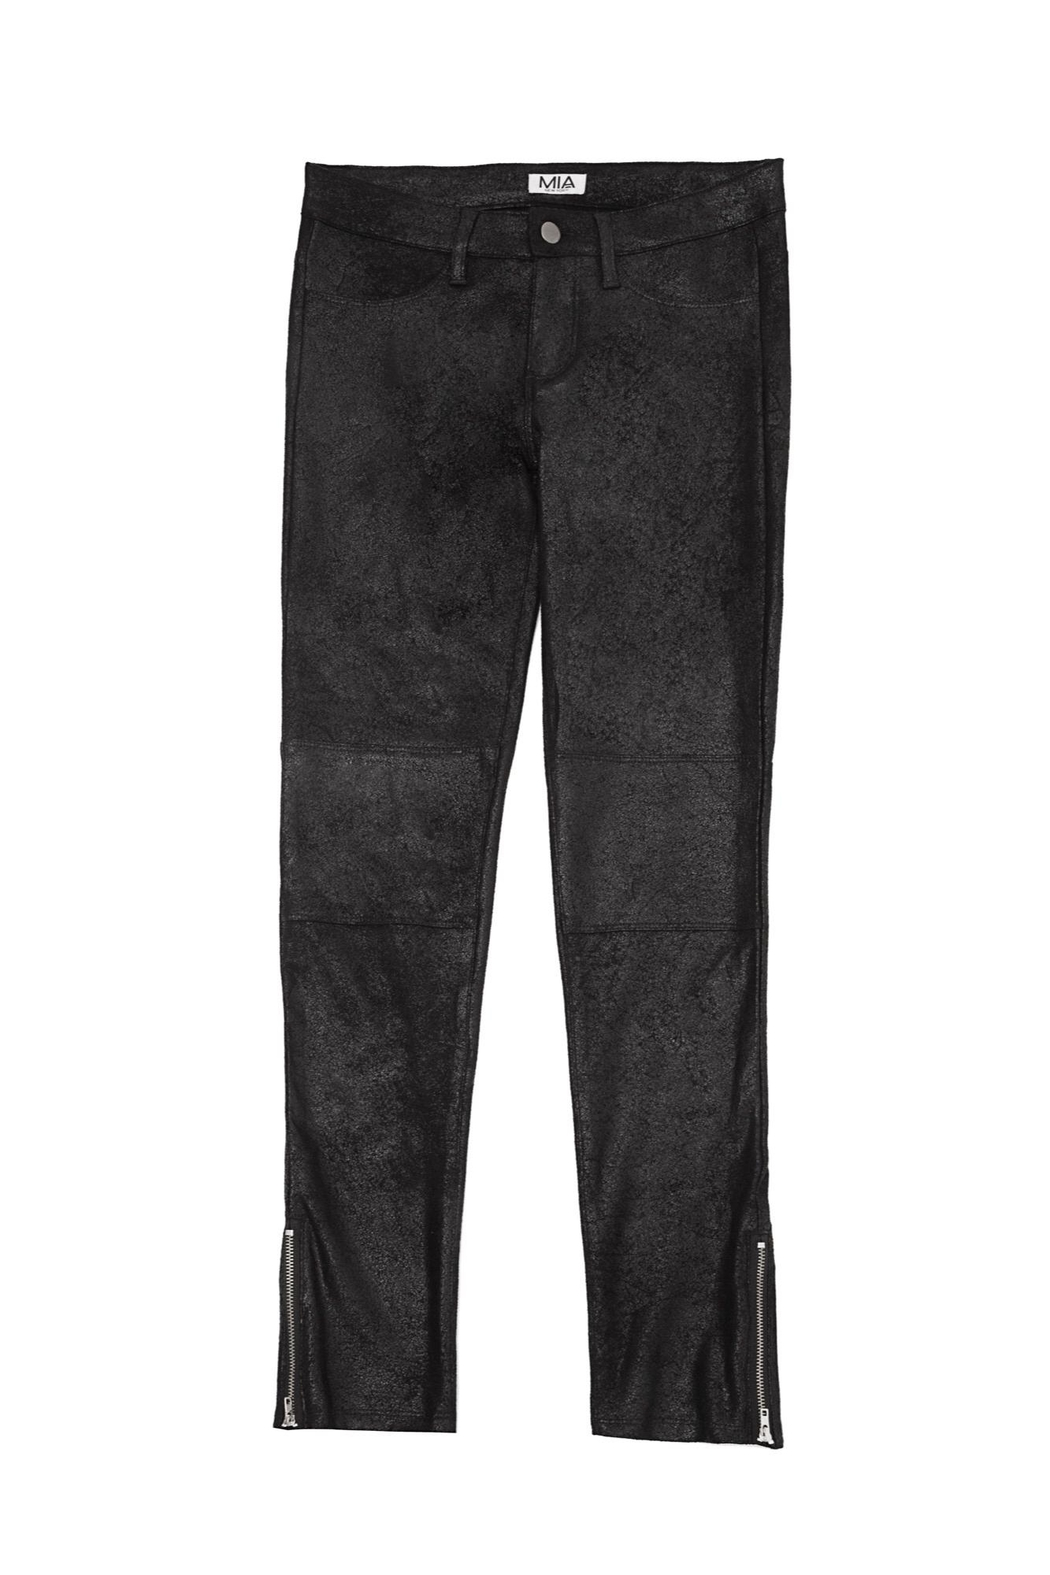 MIA New York Sueded Crackle Pants - Main Image